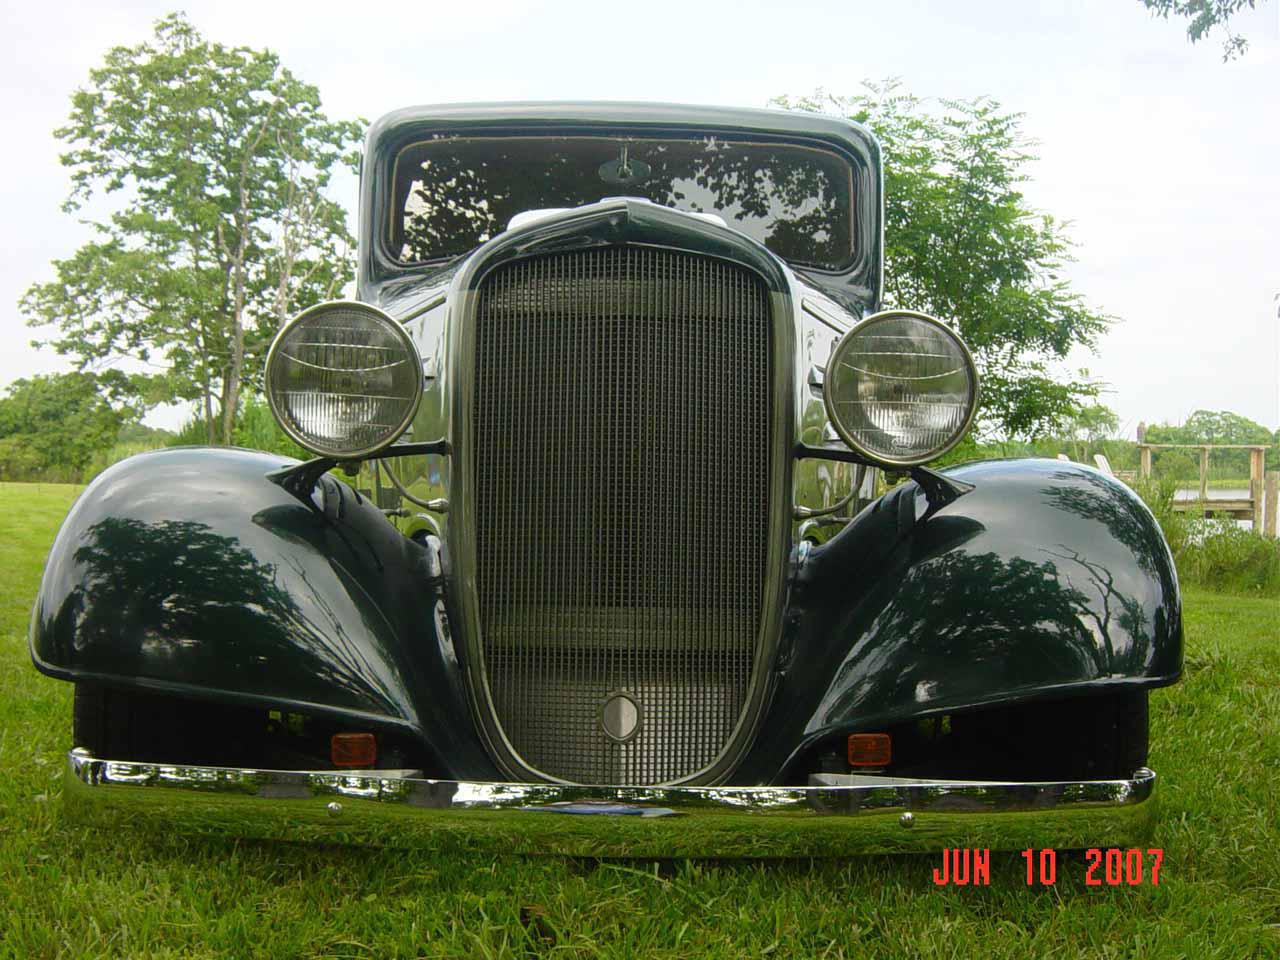 Ray Travis' 1936 Chevy 1/2-Ton